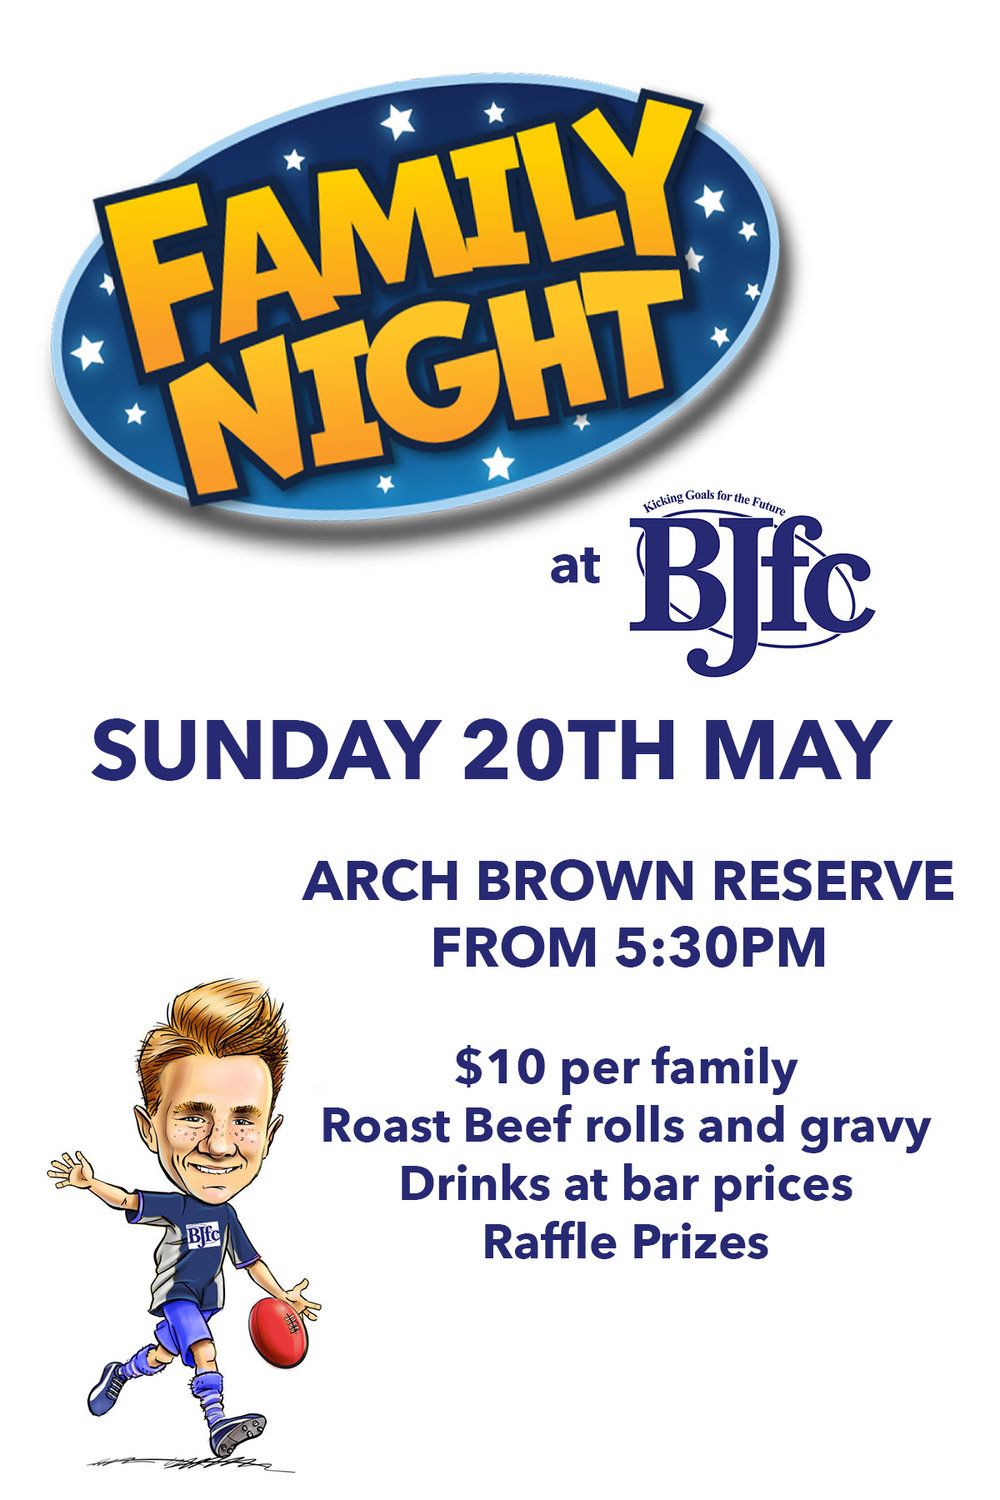 - Come and talk footy with the BJFC family next Sunday at Arch Brown Reserve!!